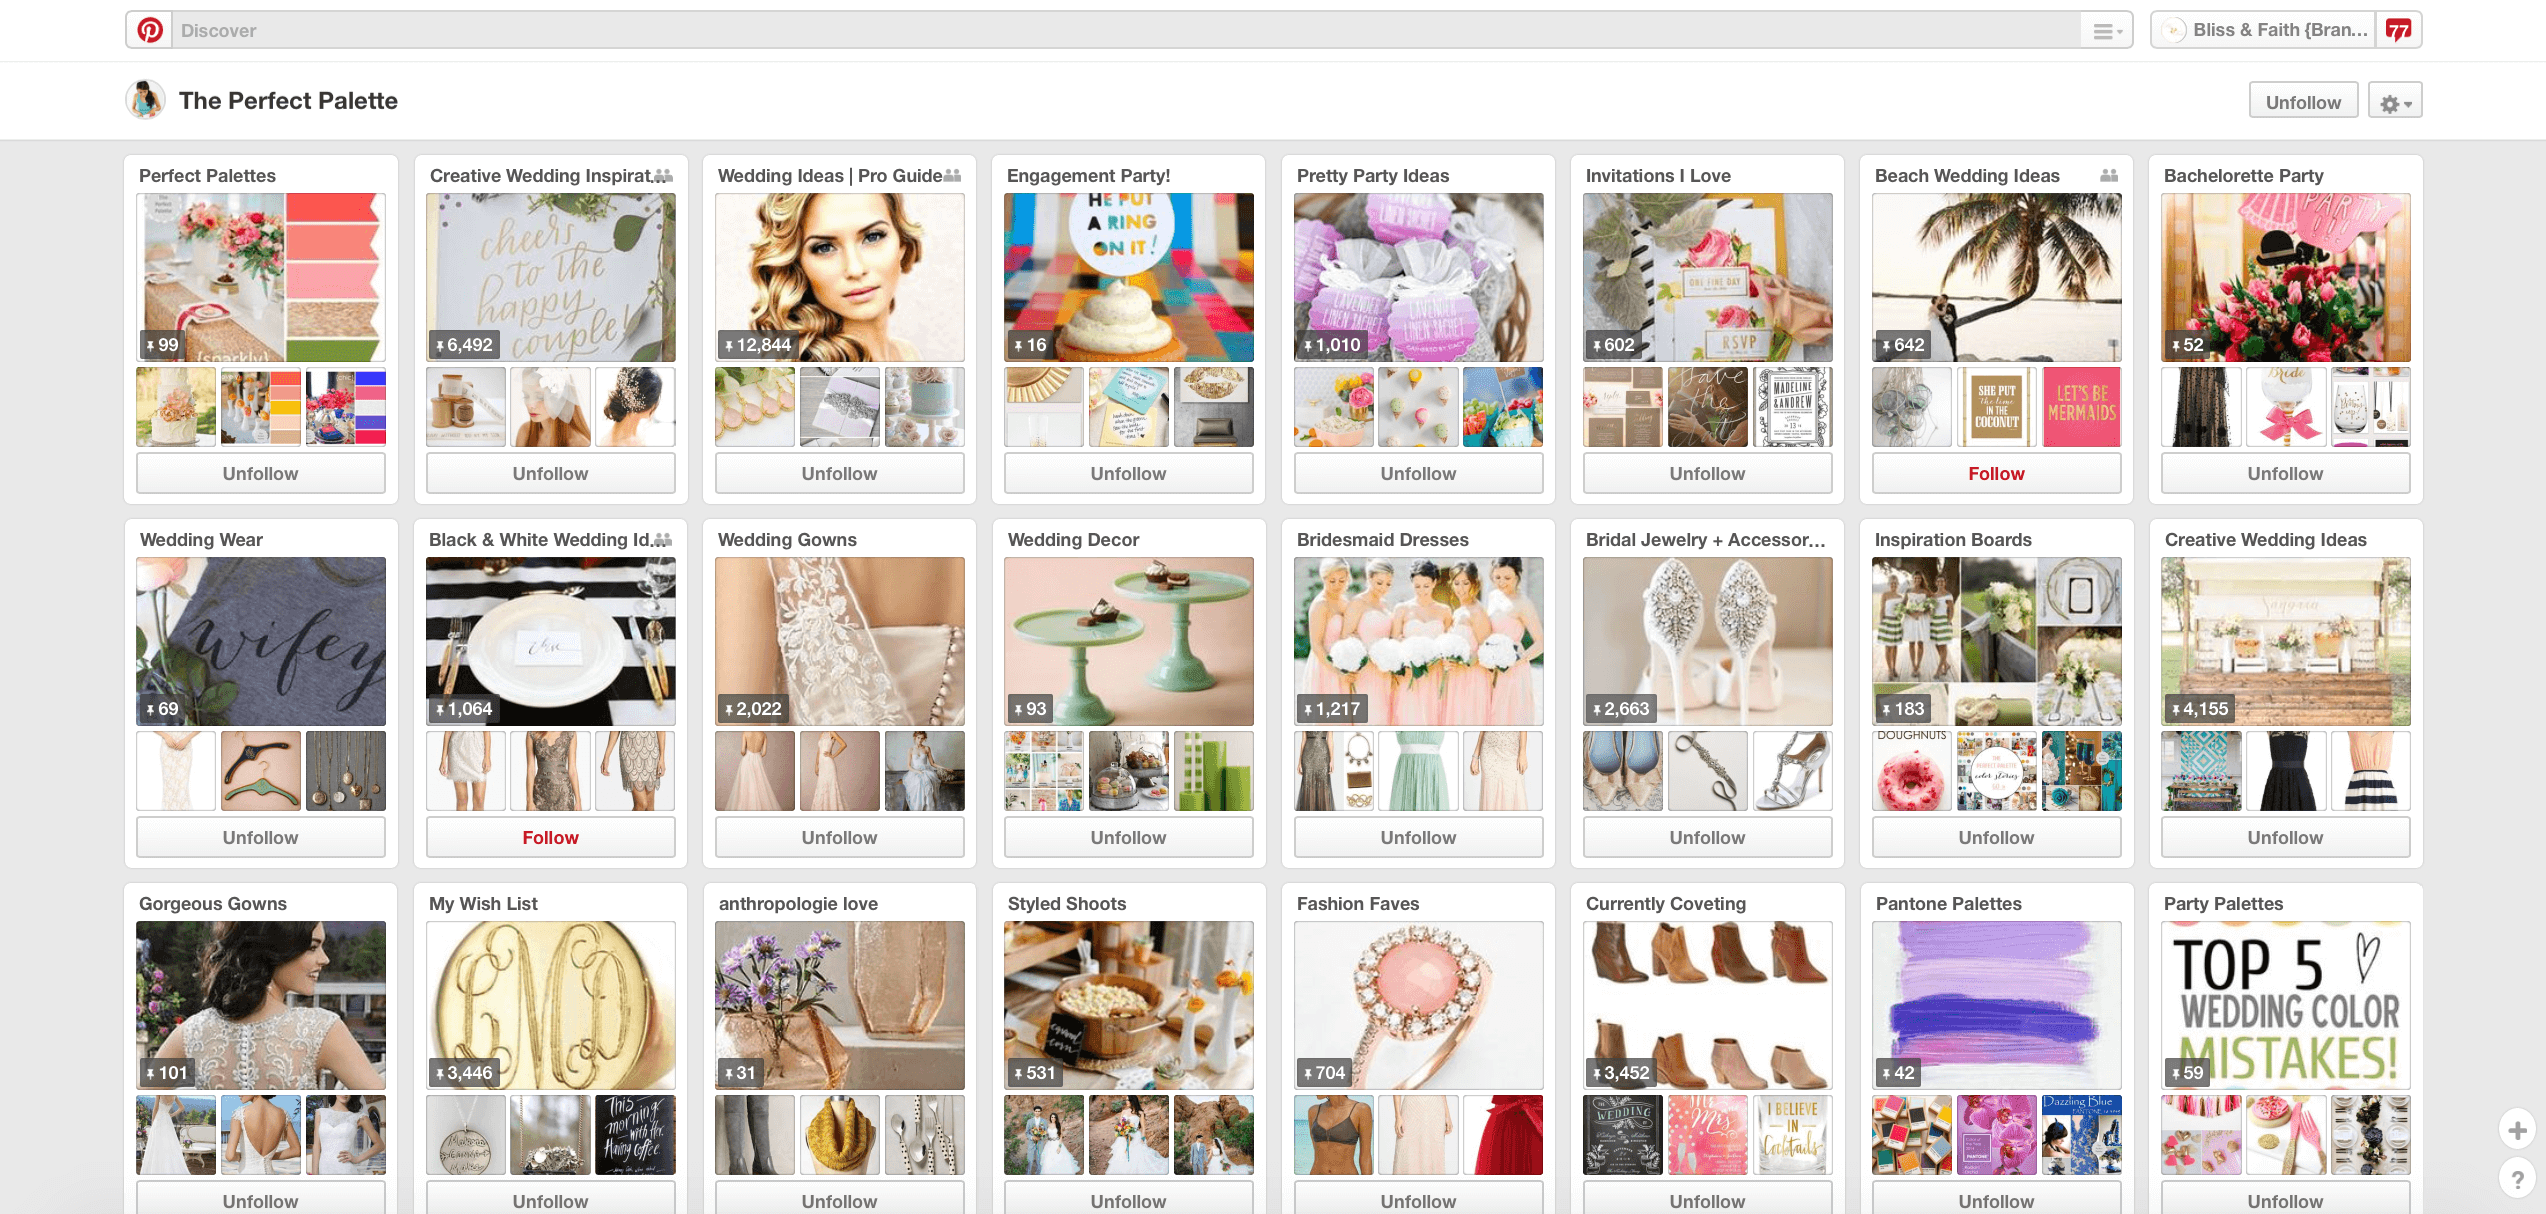 Pinterest boards from the PerfectPalette.com